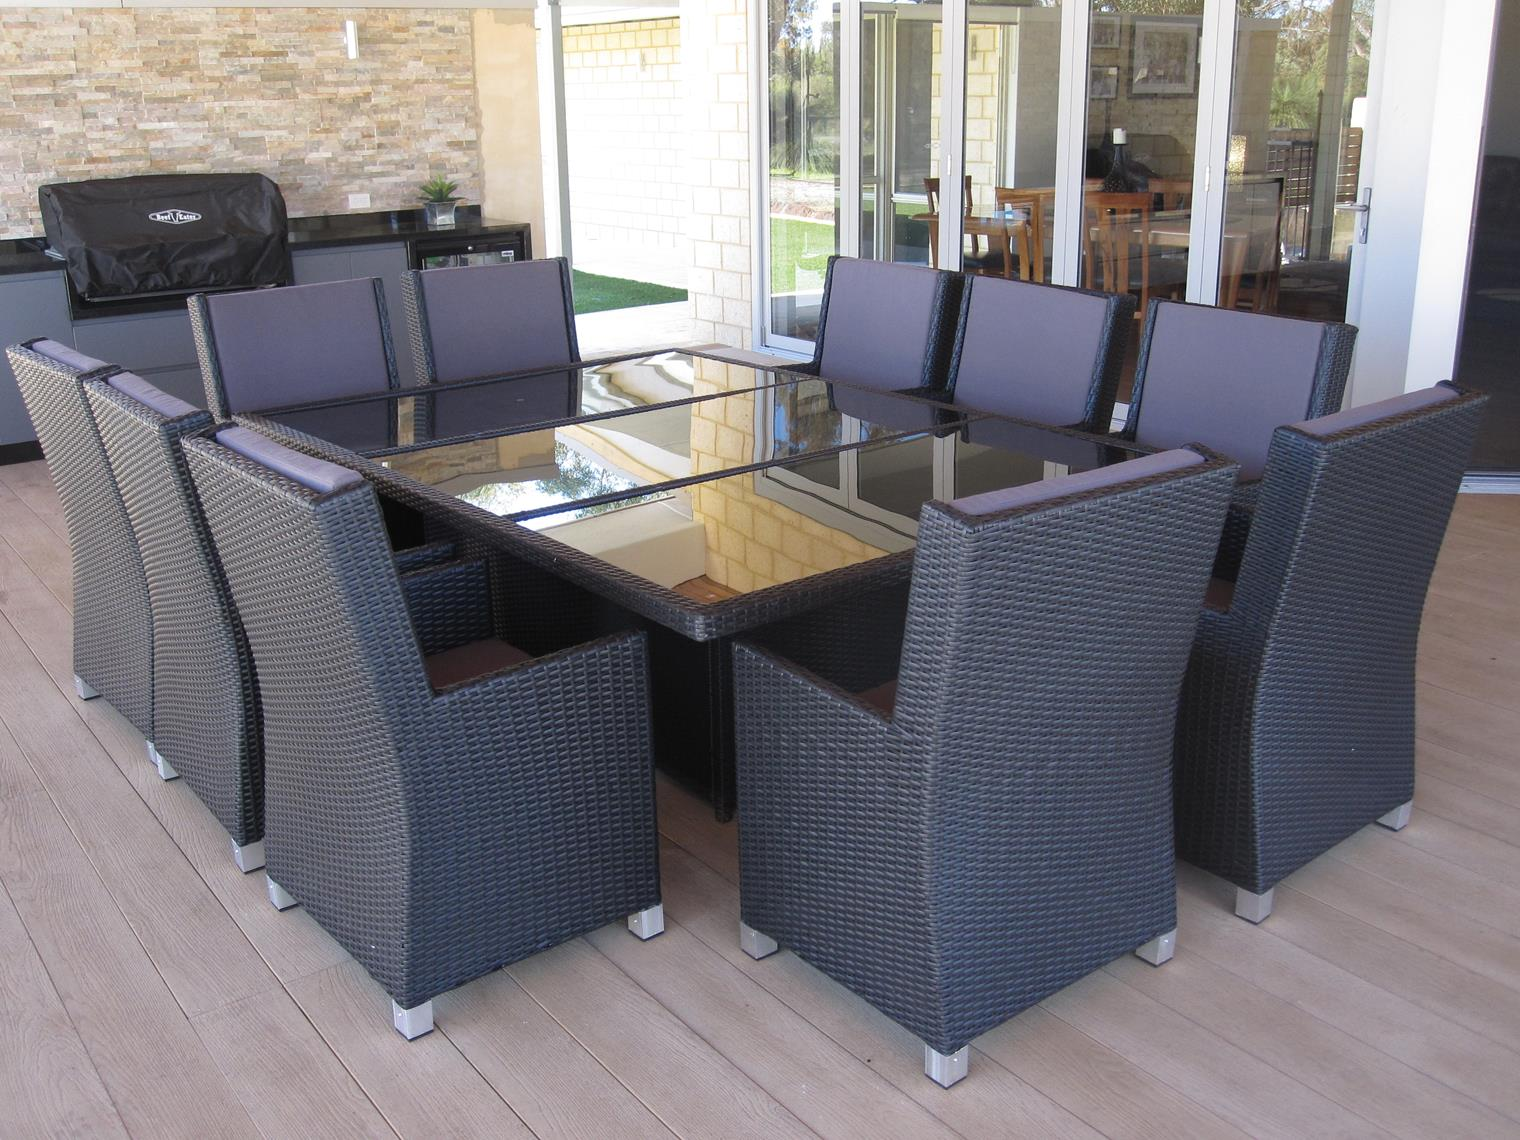 Outdoor table and chairs gumtree brisbane chairs seating for Budget bedroom furniture perth